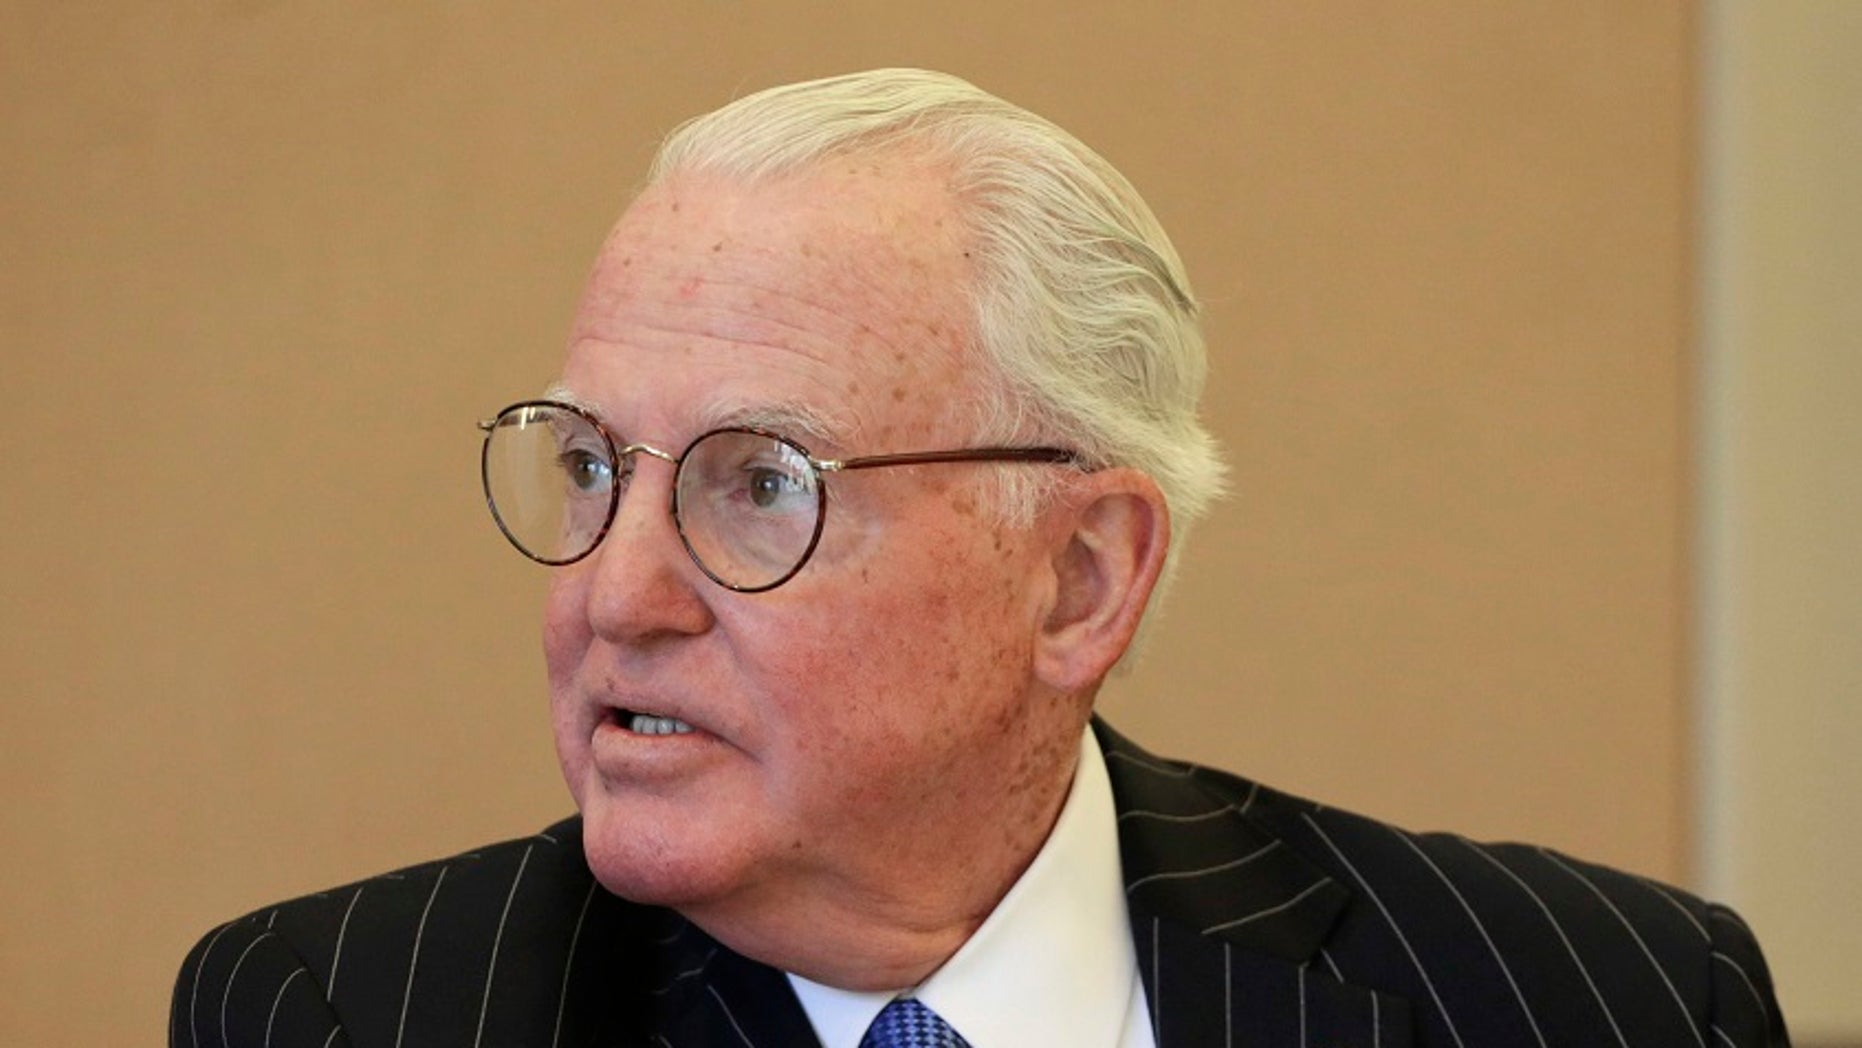 Federal Bureau of Investigation agents raid office of Ald. Ed Burke